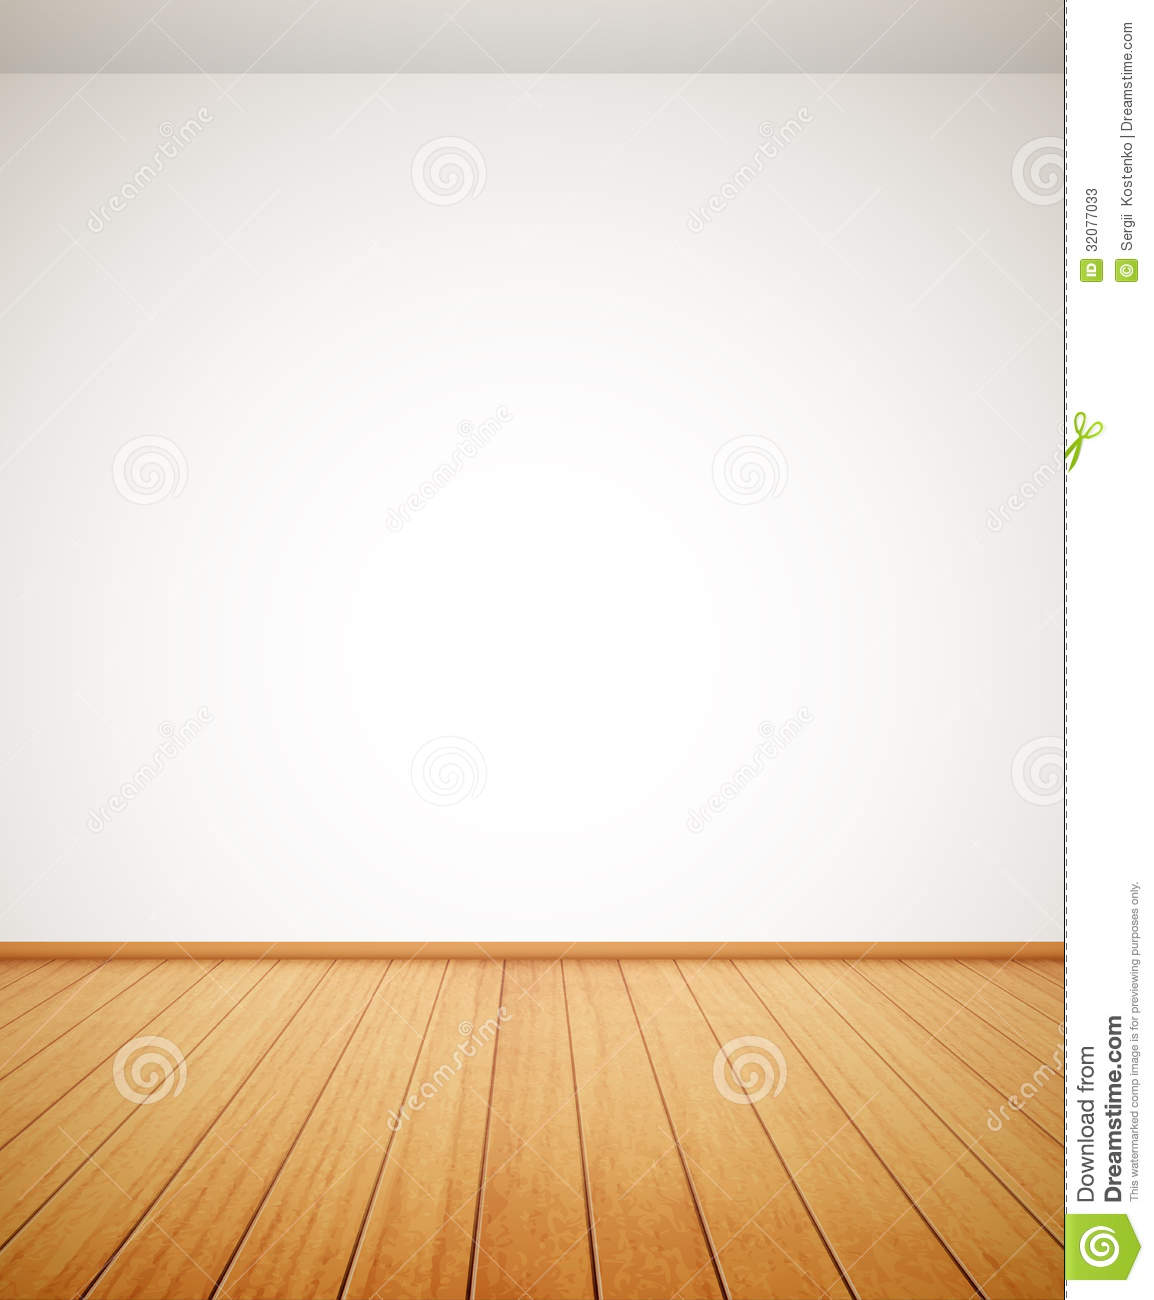 Detailed wood floor and white wall stock photos image for Floor and wall